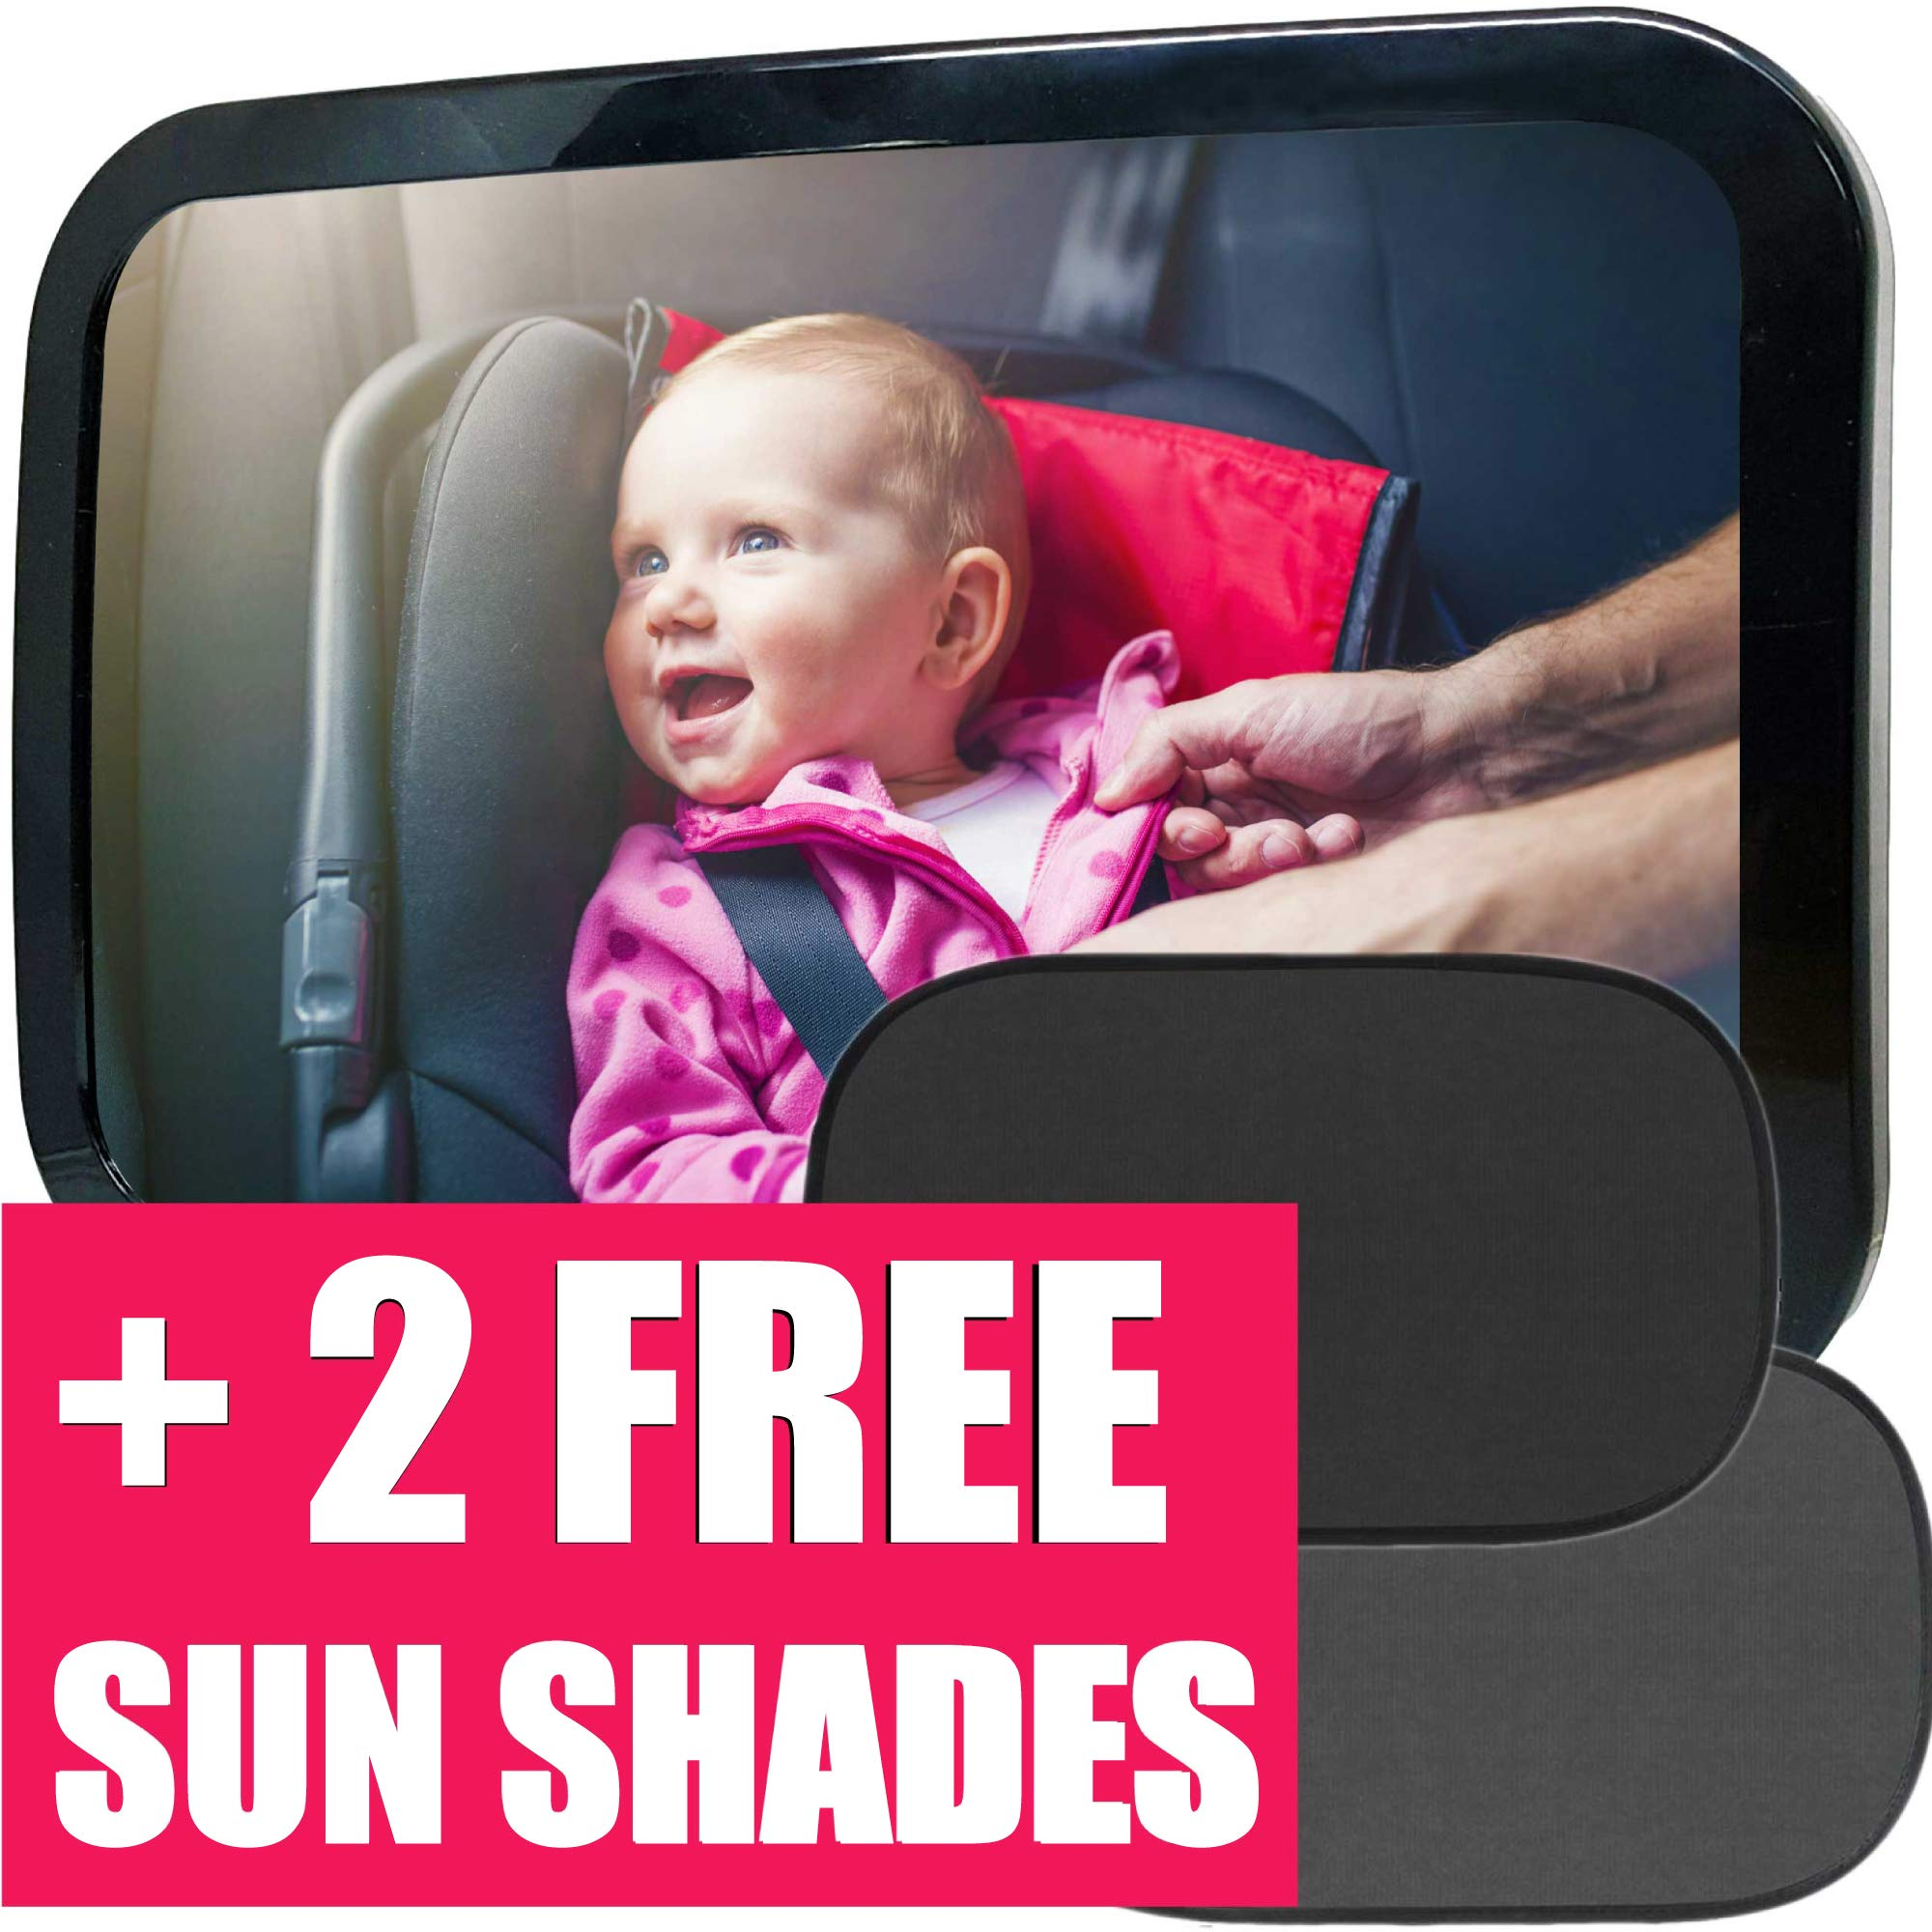 Baby Car Mirror |Baby Mirror for Car + 2 Free Sunshades|Safely Monitor Infant Child in Rear Facing Car Seat, Wide View Shatterproof Adjustable Acrylic 360°for Backseat, Crash Tested by DadsLove